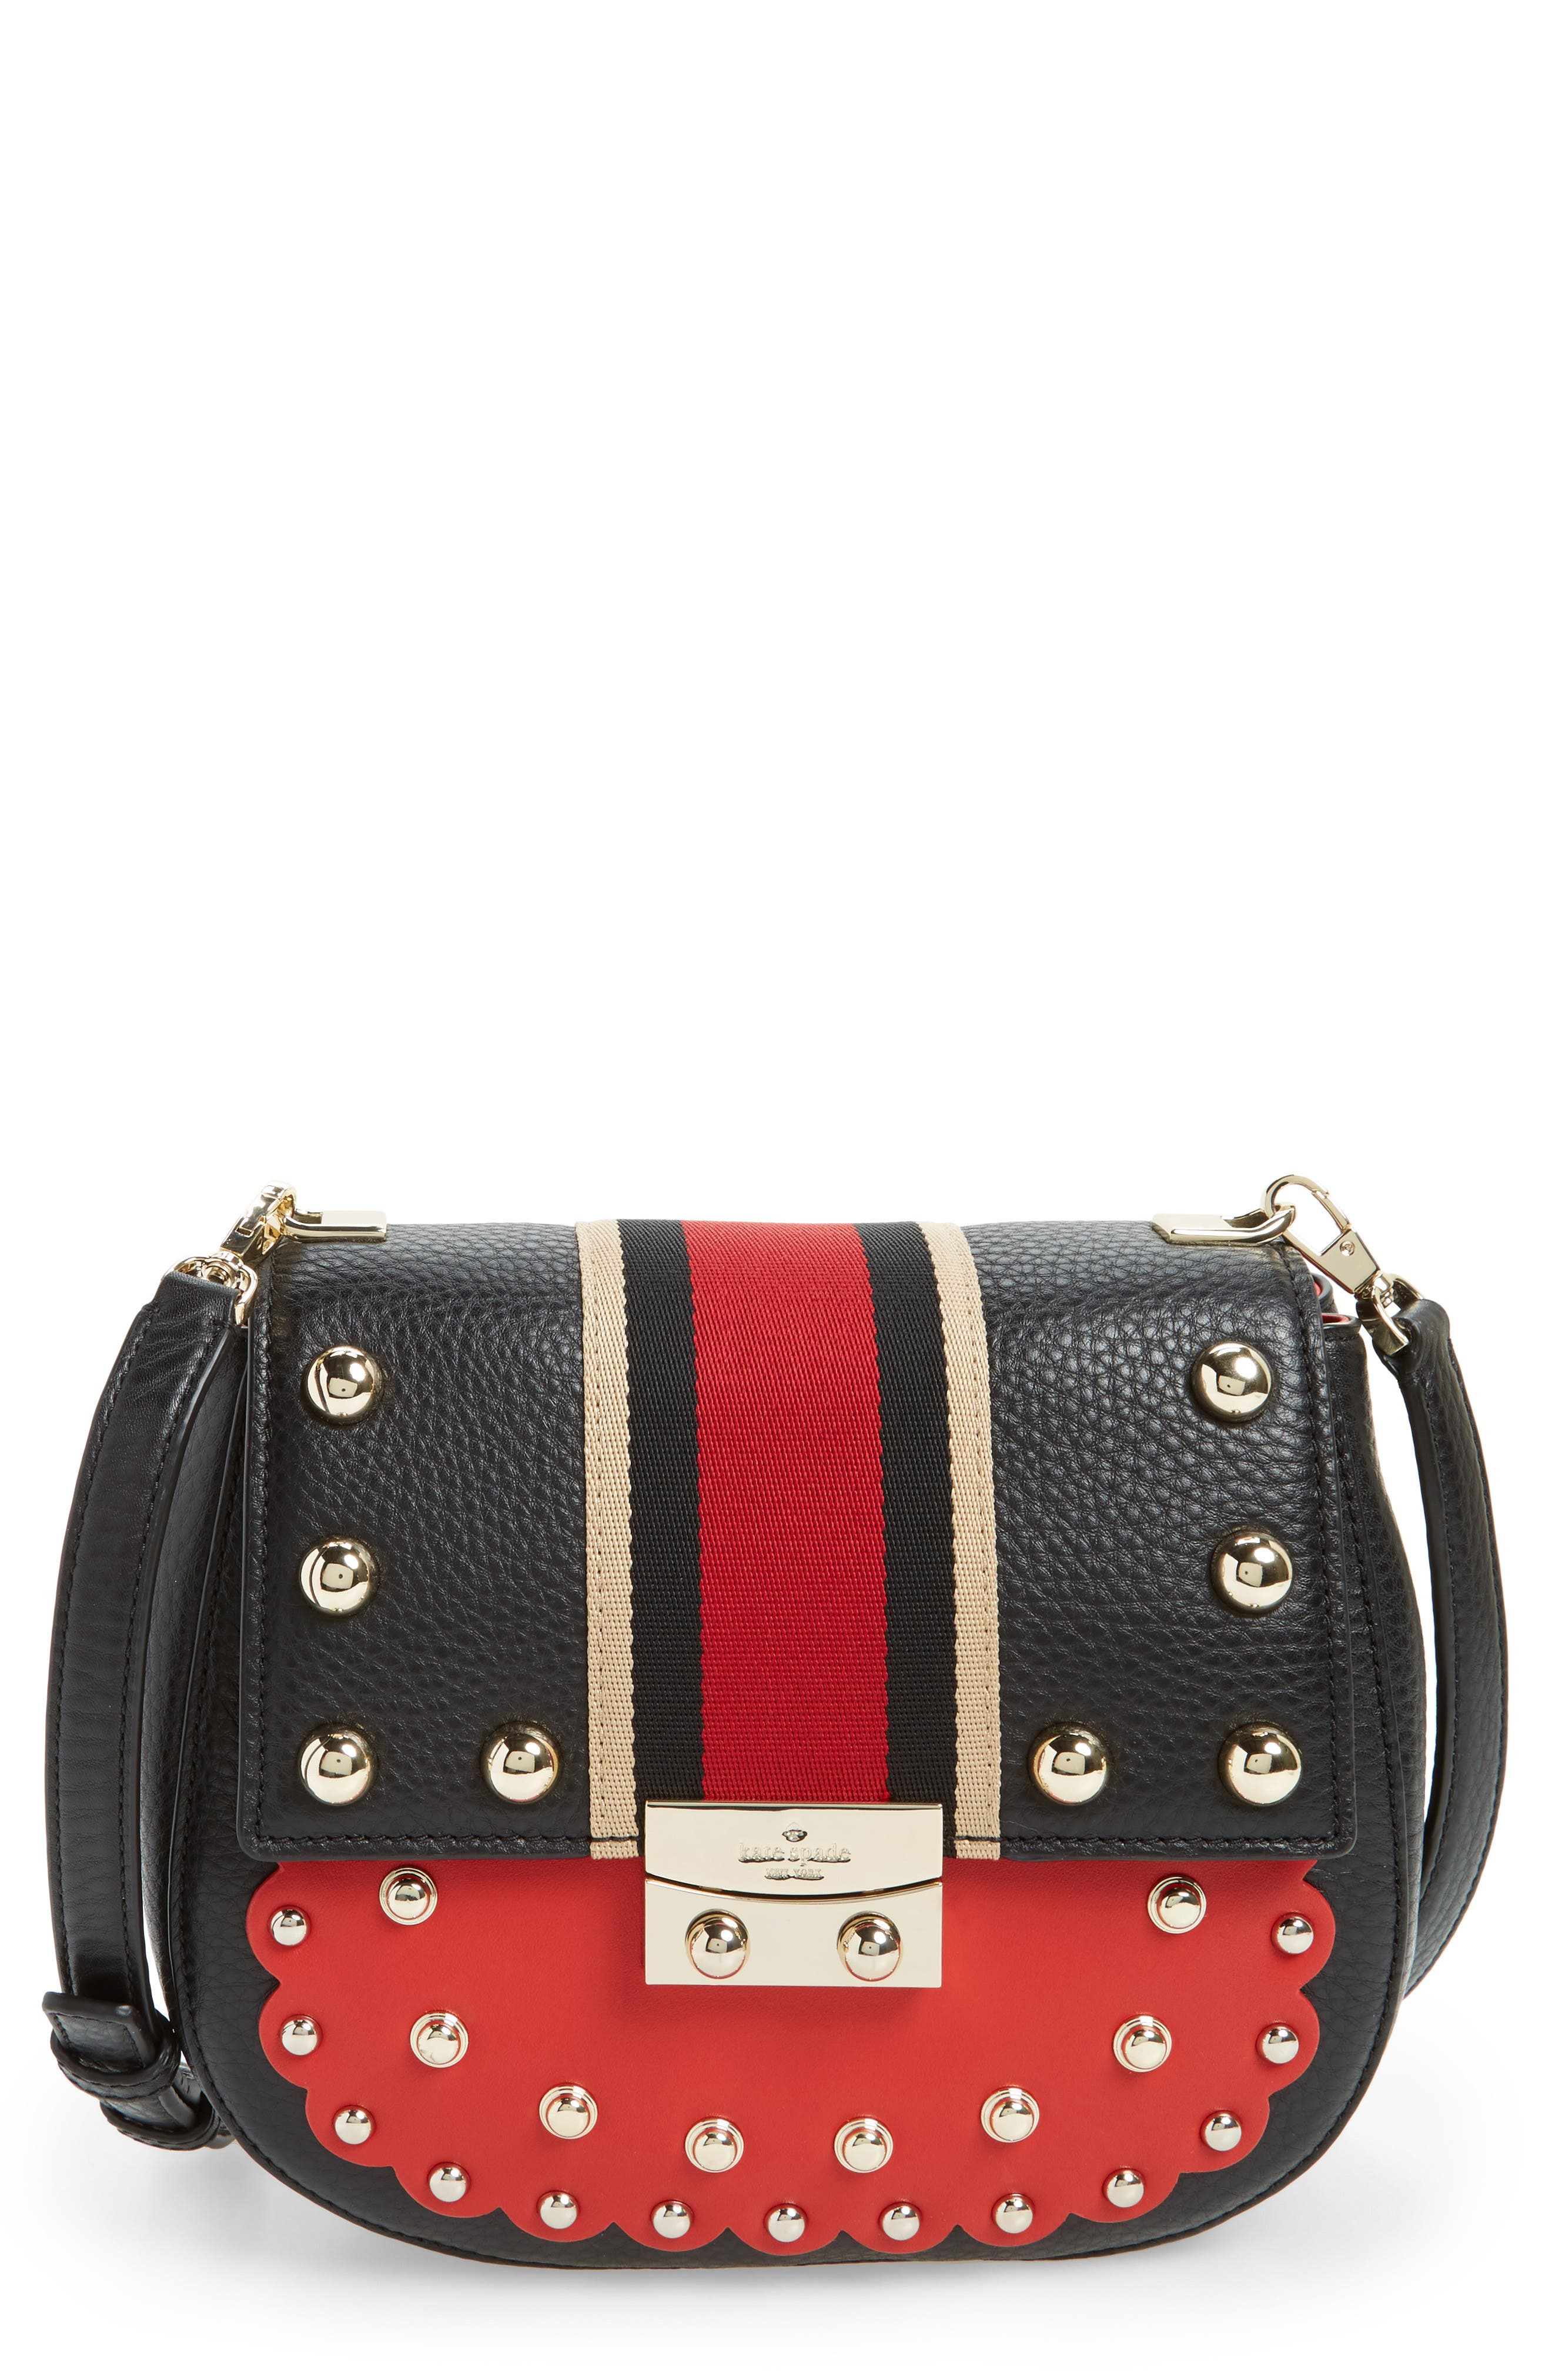 madison stewart street - byrdie studded leather satchel,                             Main thumbnail 1, color,                             631